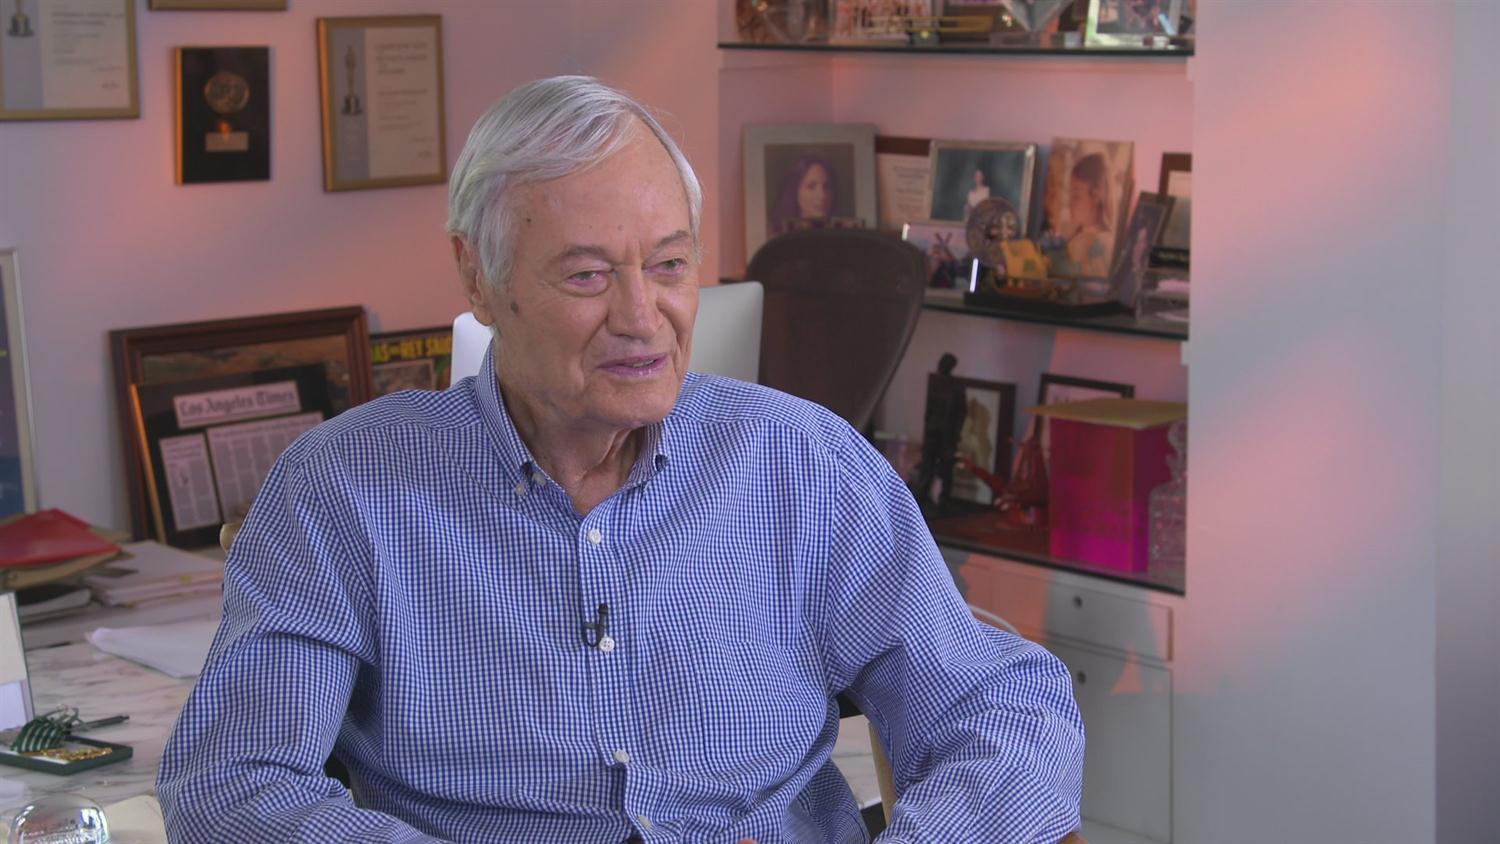 Roger Corman on Working with Pre-Kirk William Shatner